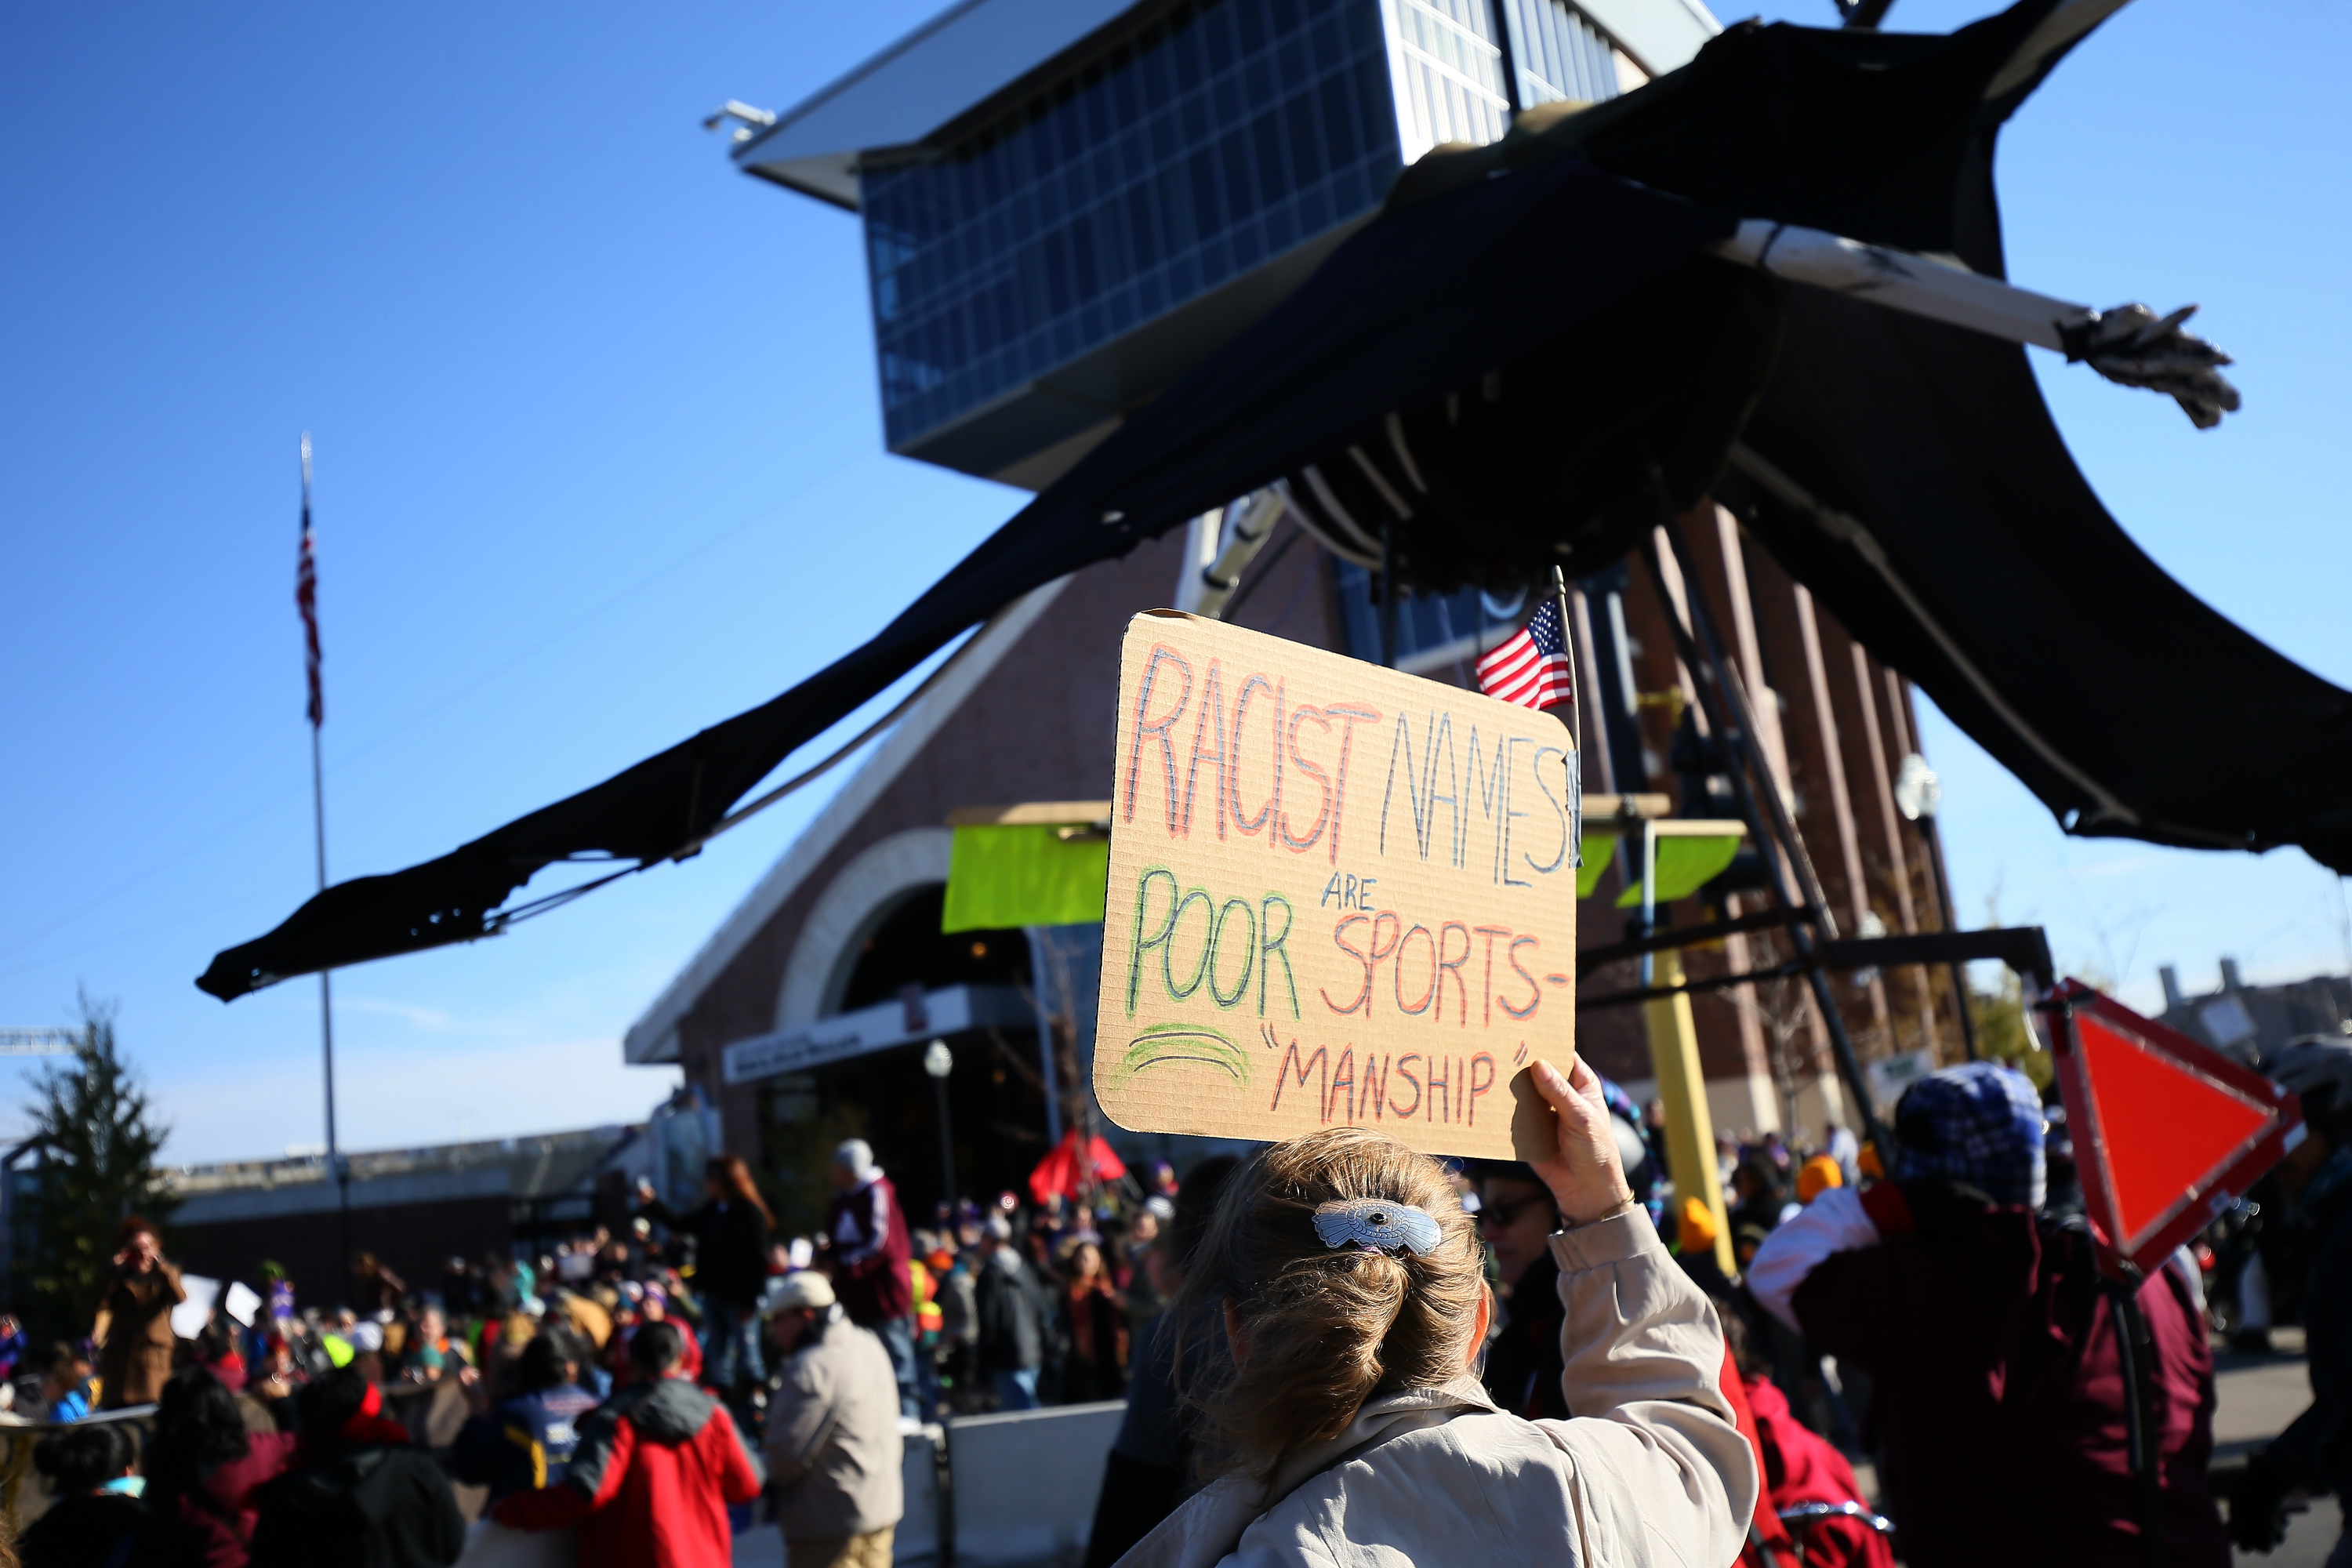 Protesters demonstrate at a Washington Redskins game in 2014